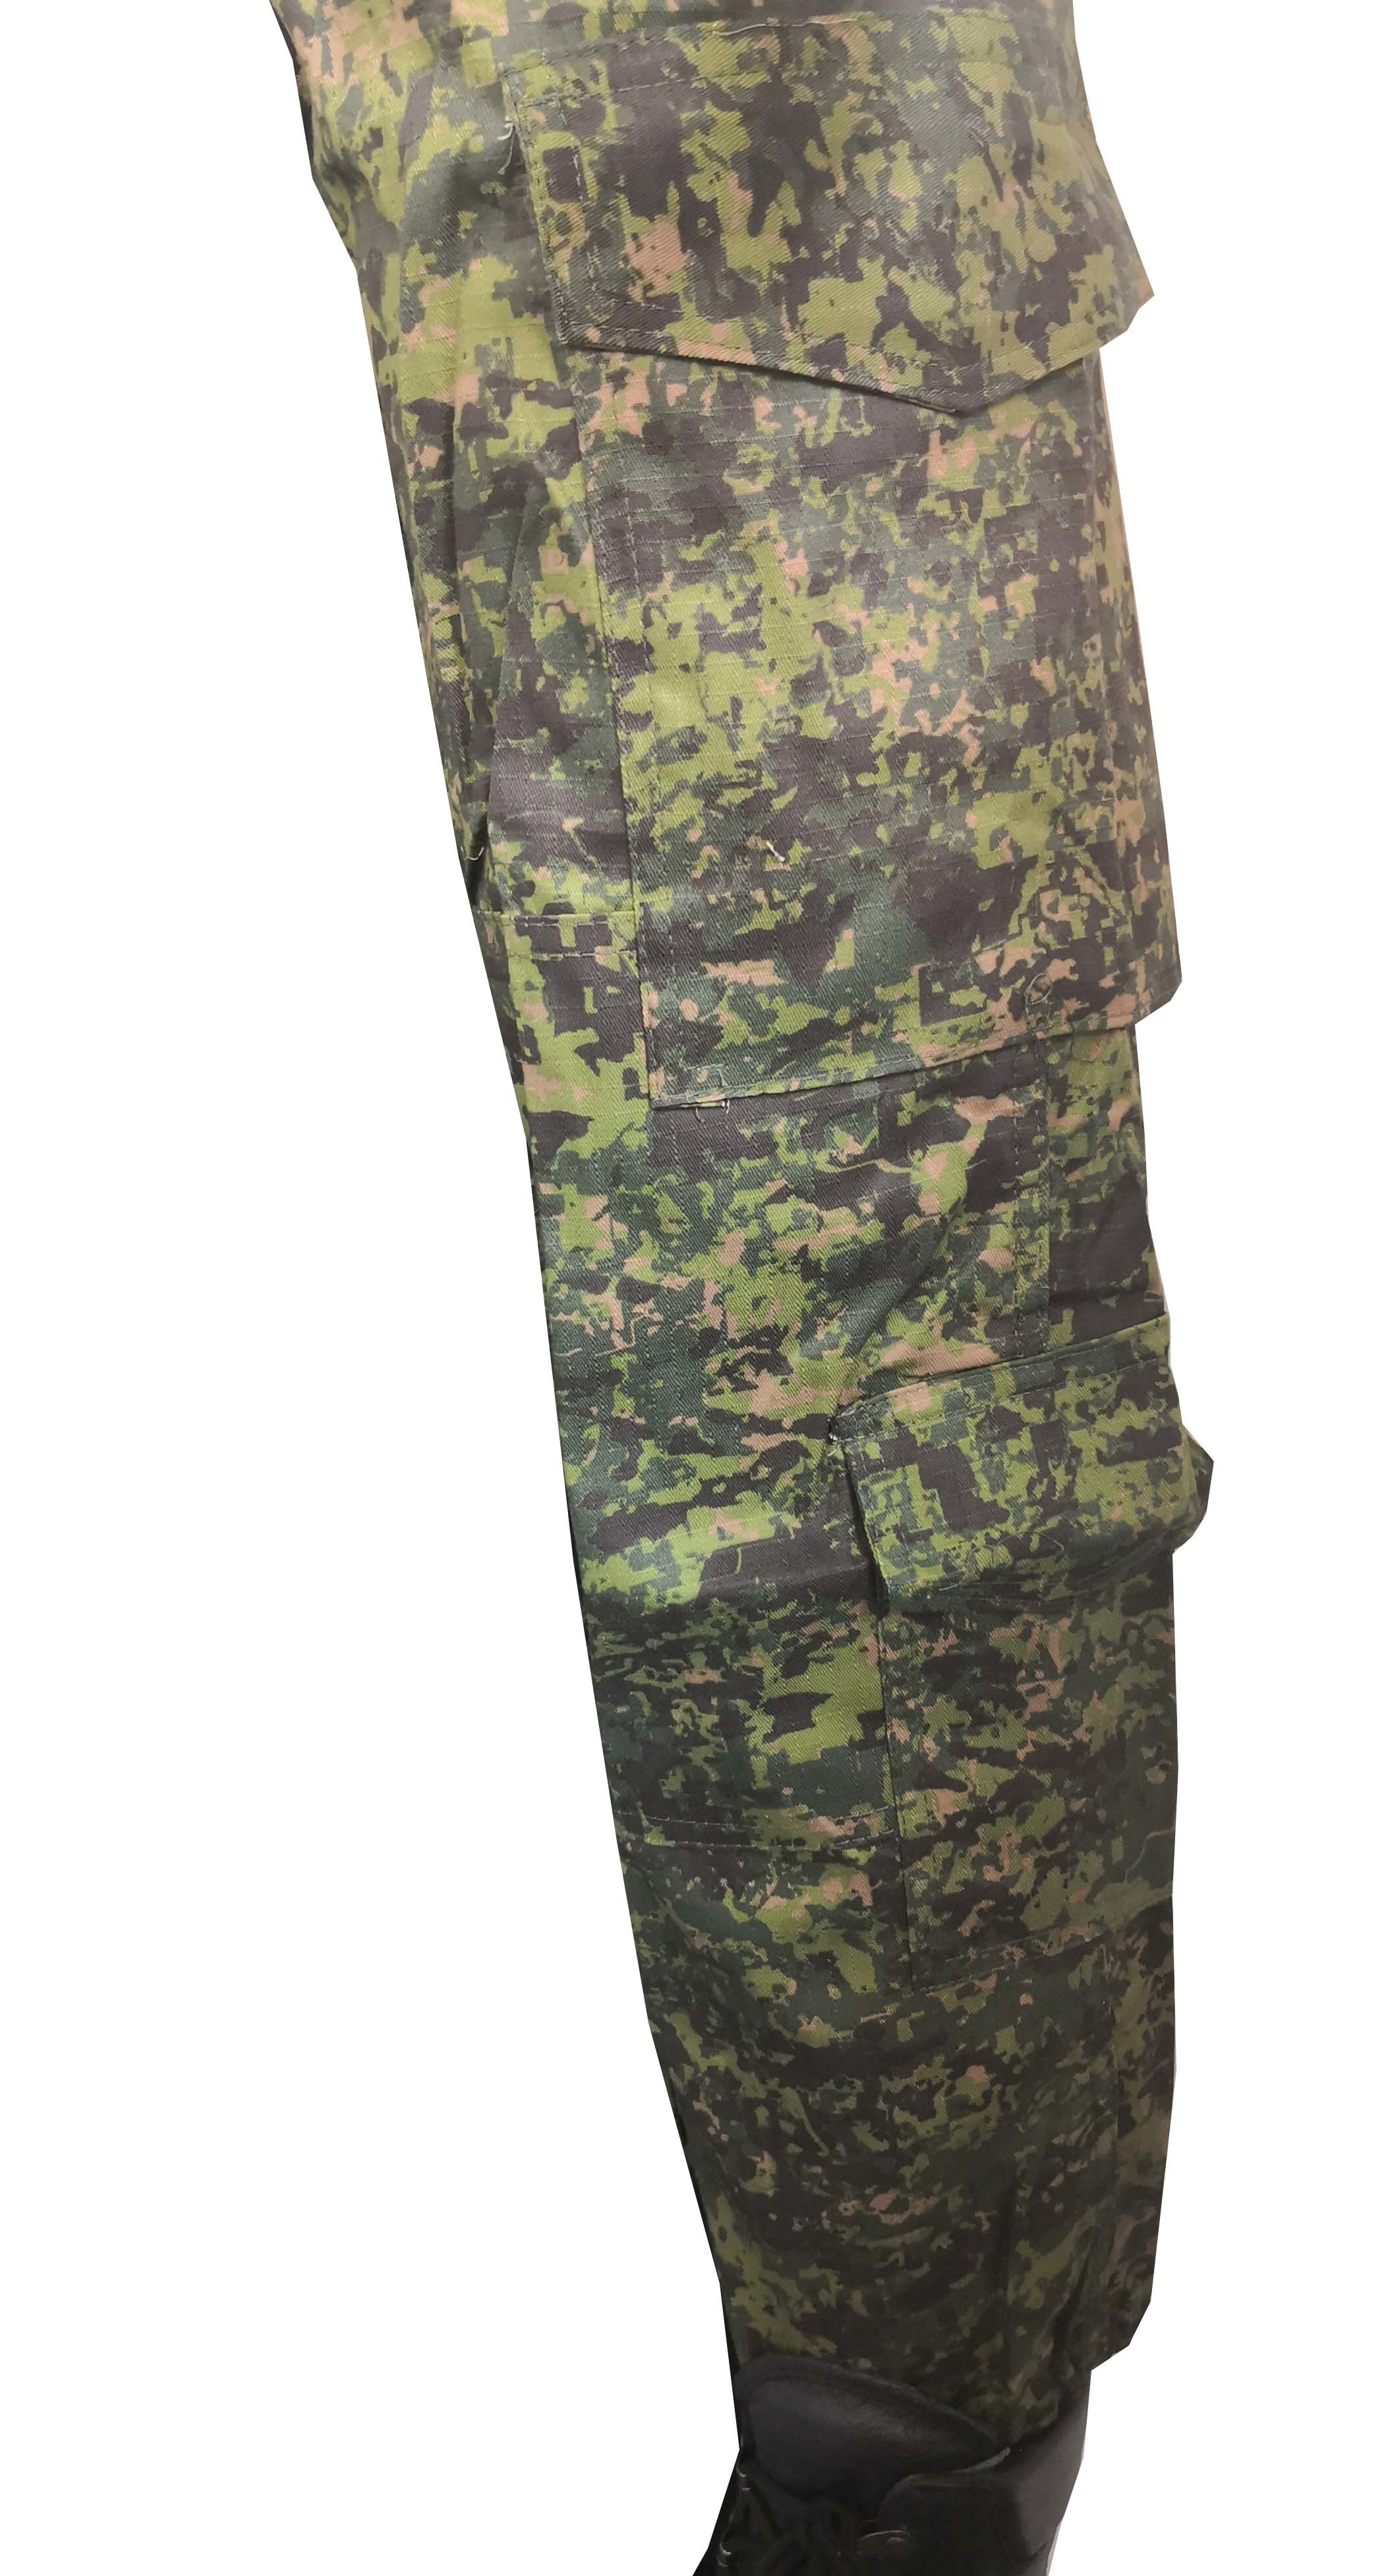 Philippines Army AFP Philarpat Digital Camouflage Uniform